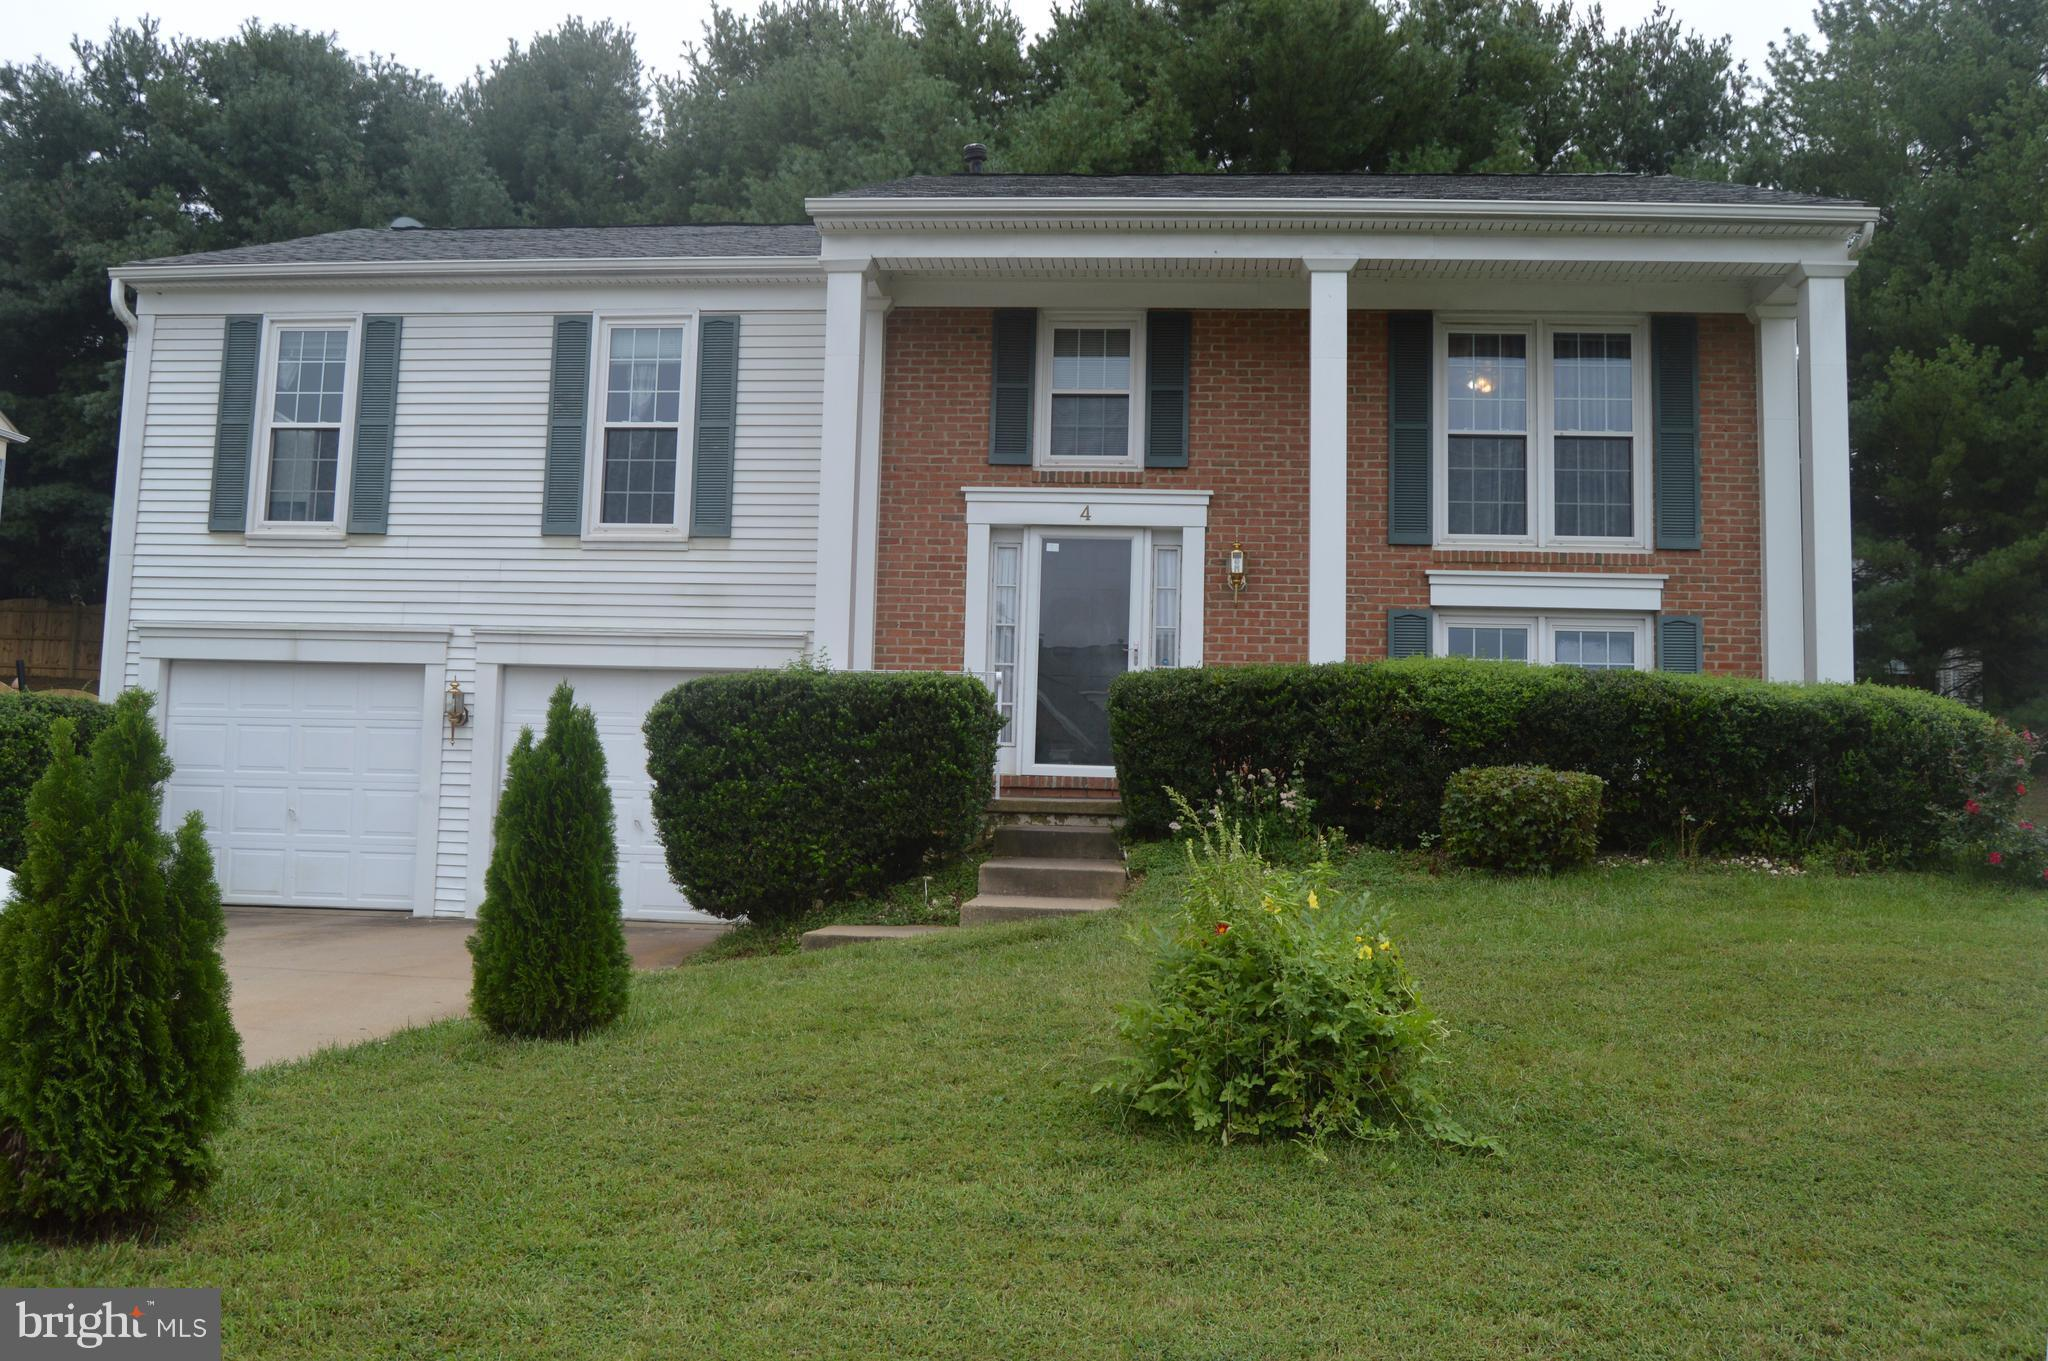 This nice, clean home awaits you and your family! The wide, inviting entrance w/ nice sized living r